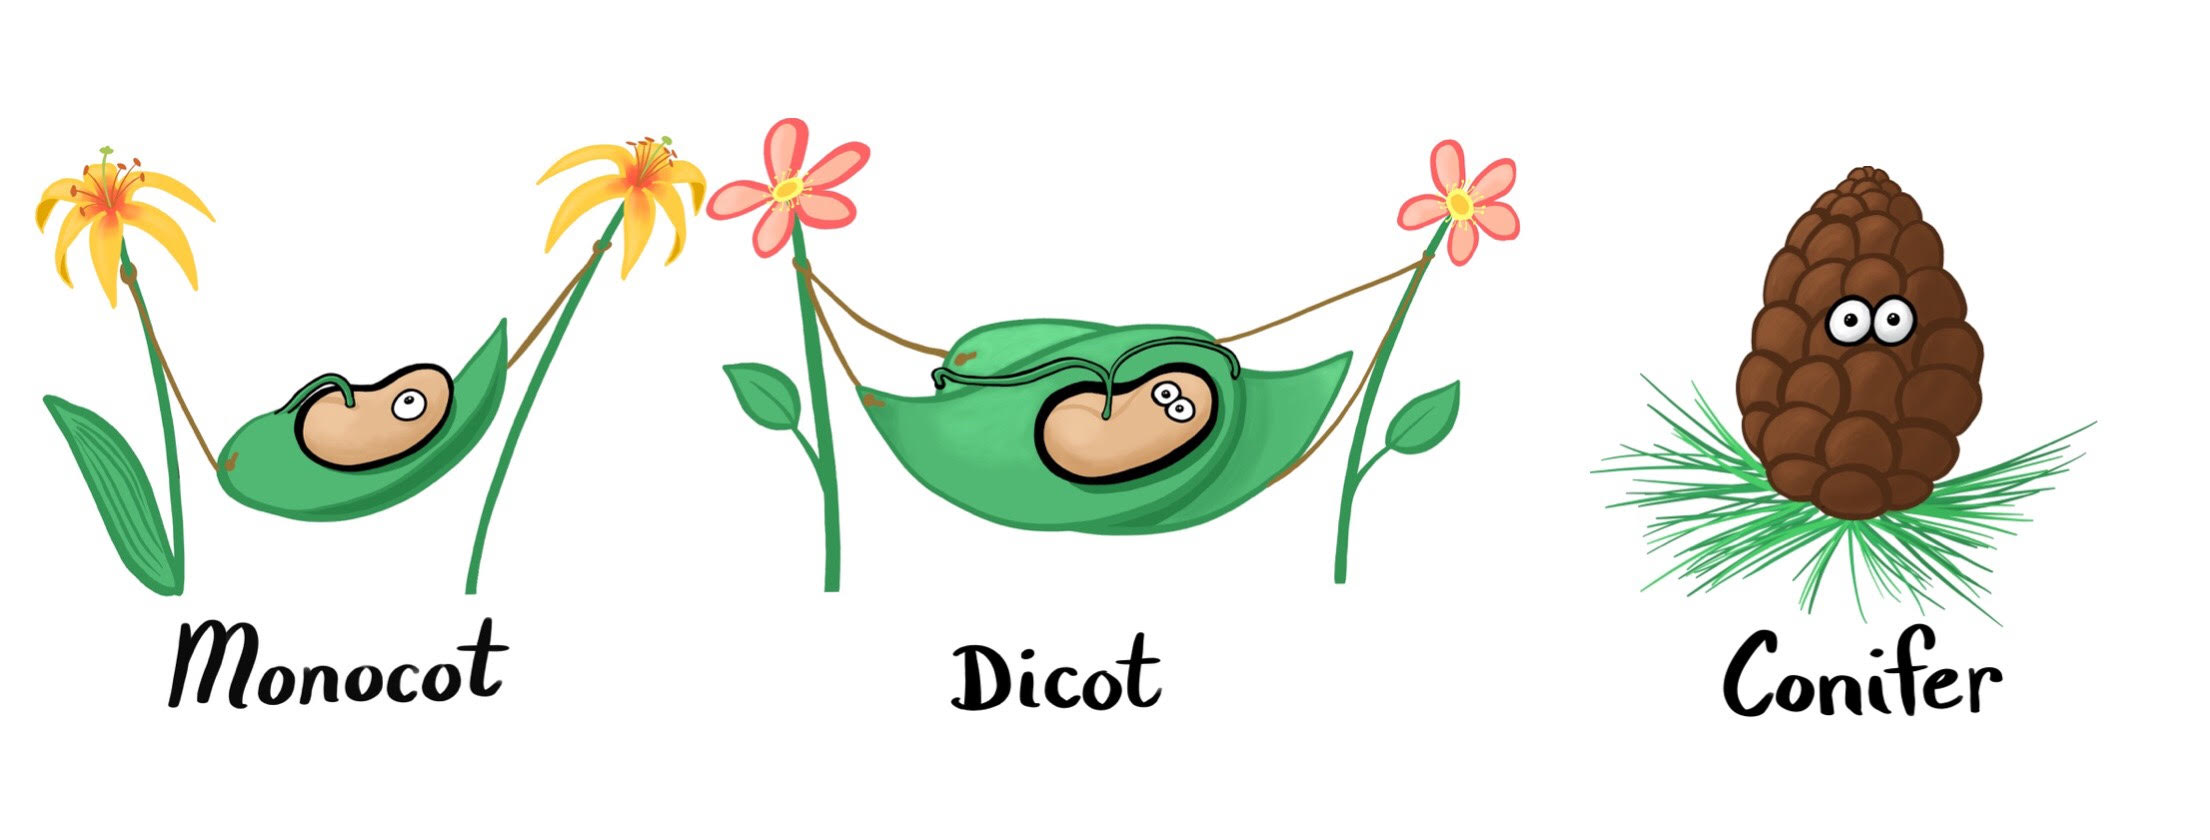 monocot-dicot-conifer.jpg